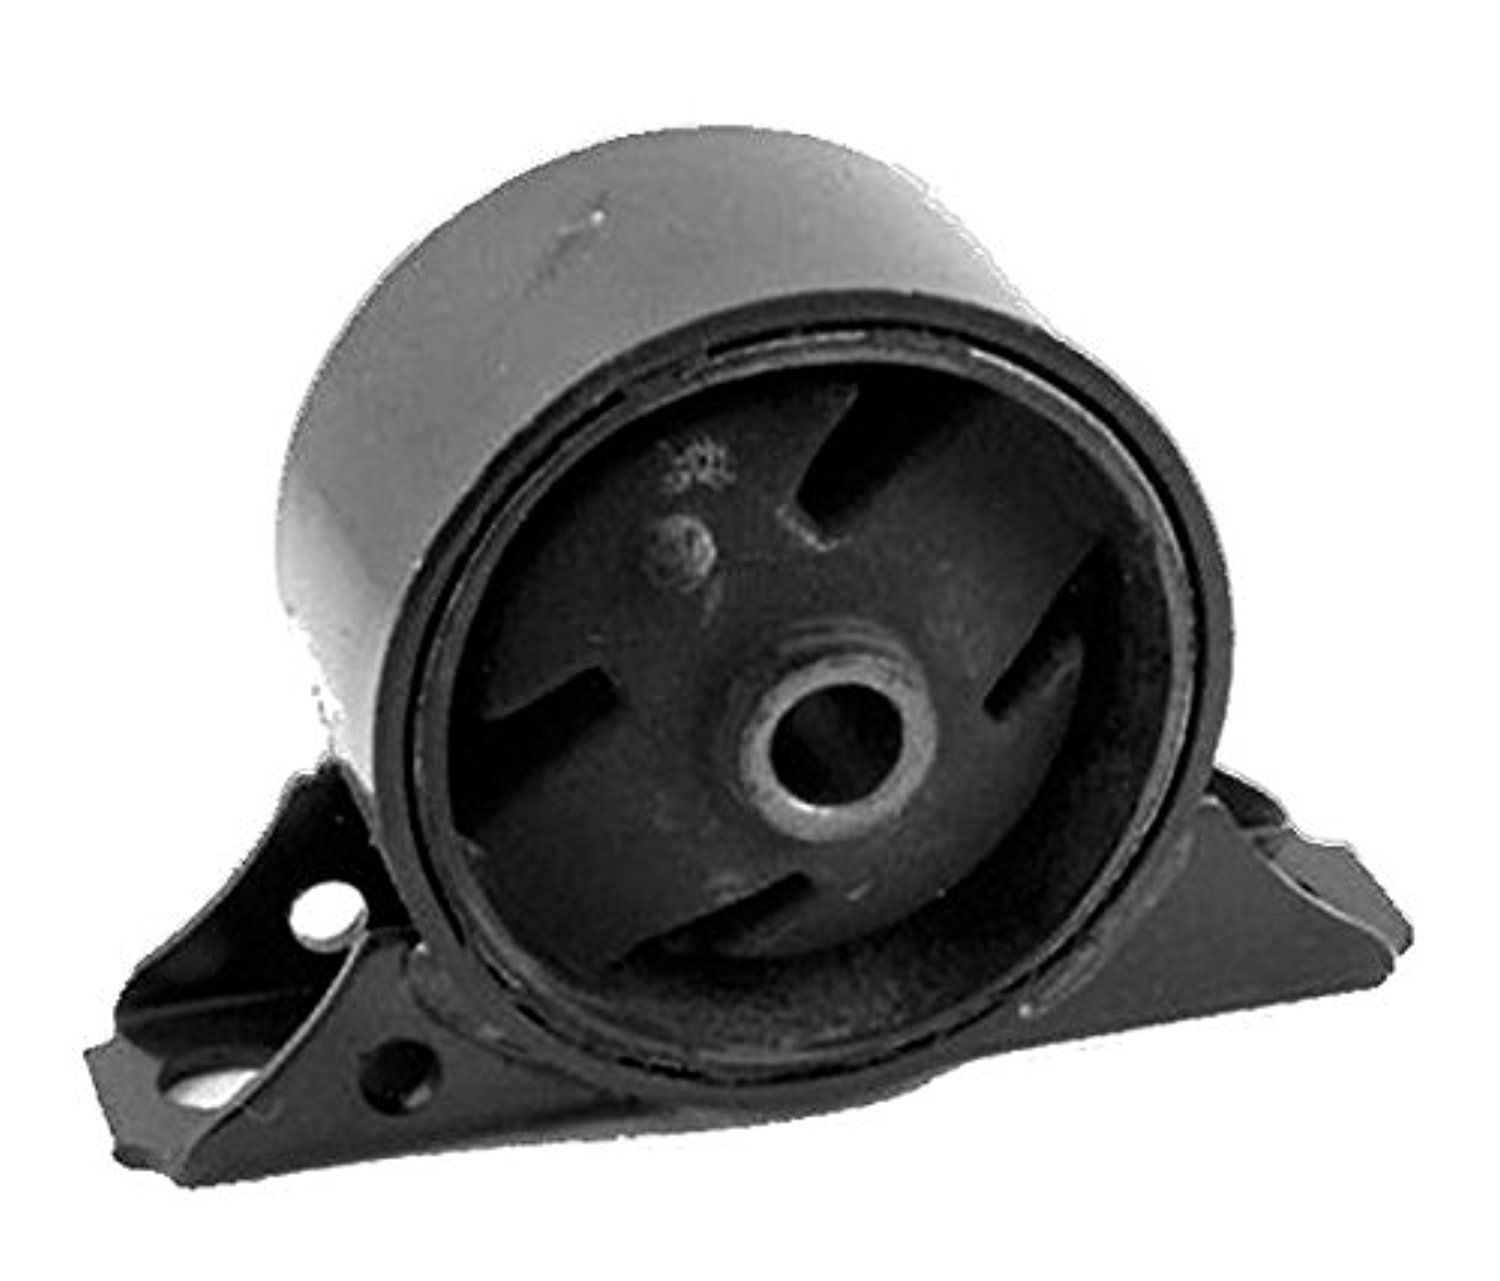 For 1997-2002 Mitsubishi Mirage 1.5L 1.8L Front Engine Motor Mount Manual  Transmission 6622 97 98 99 00 01 02 -- Awesome products selected by Anna  Churchill